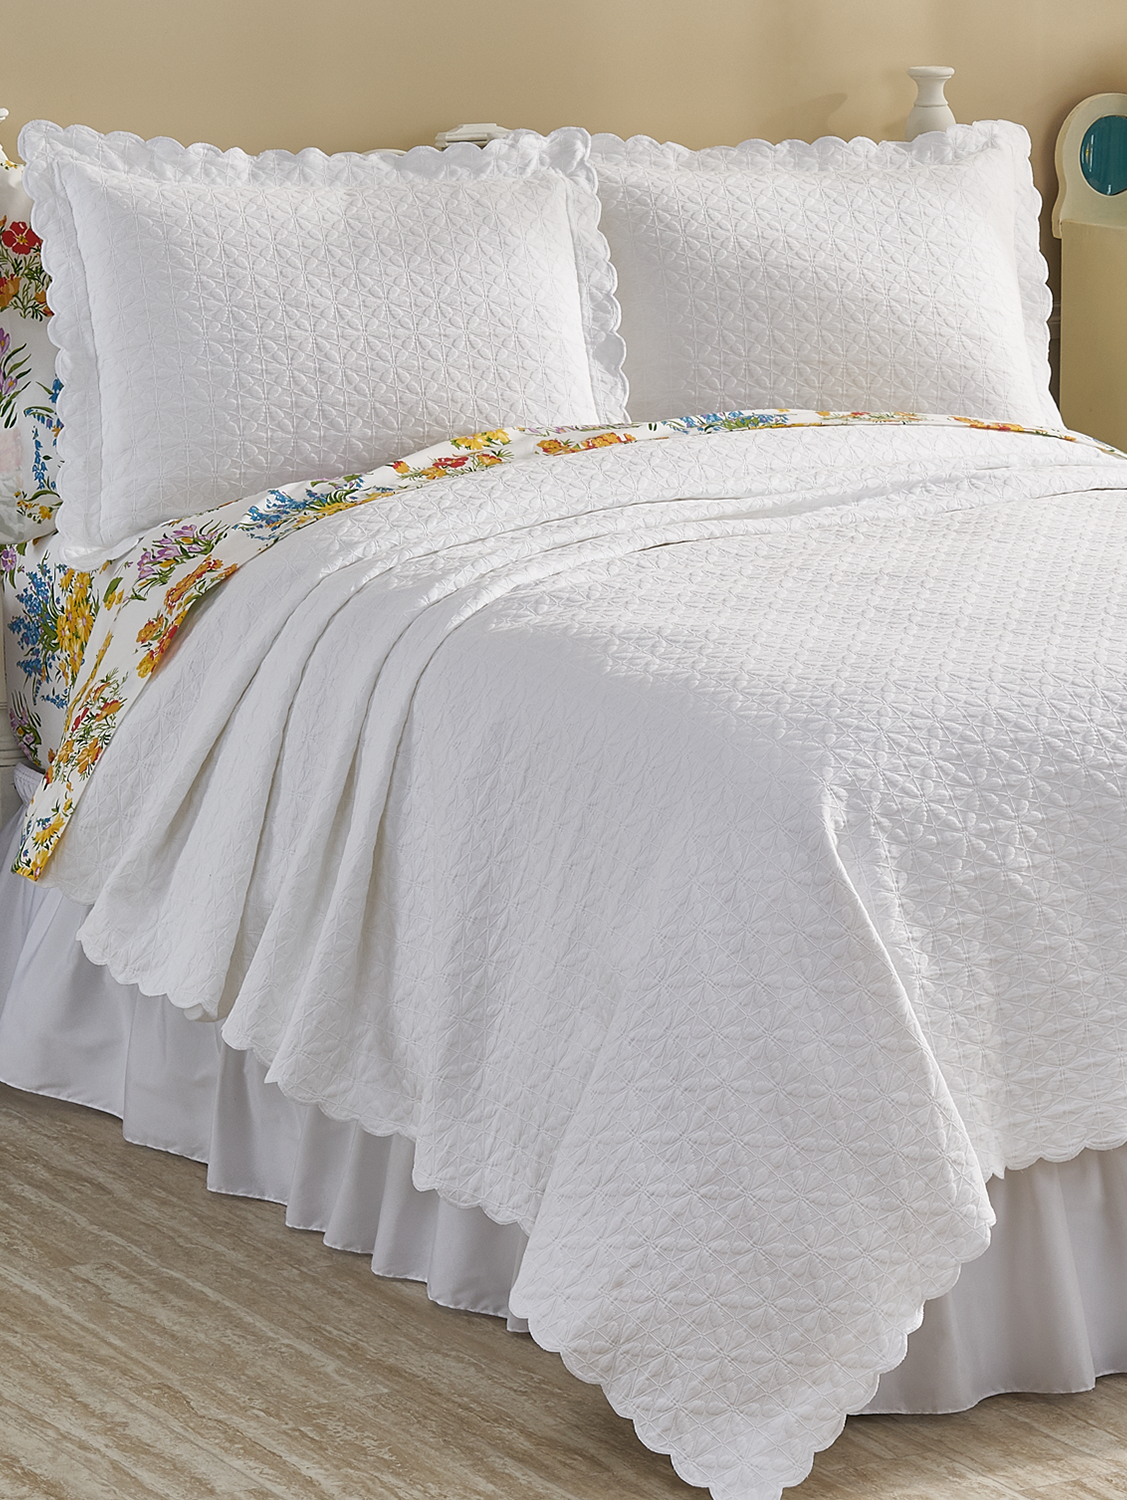 Floral Matelasse Coverlet Brings Nature S Beauty To Your Bedroom Coverlets Home Decor Decor